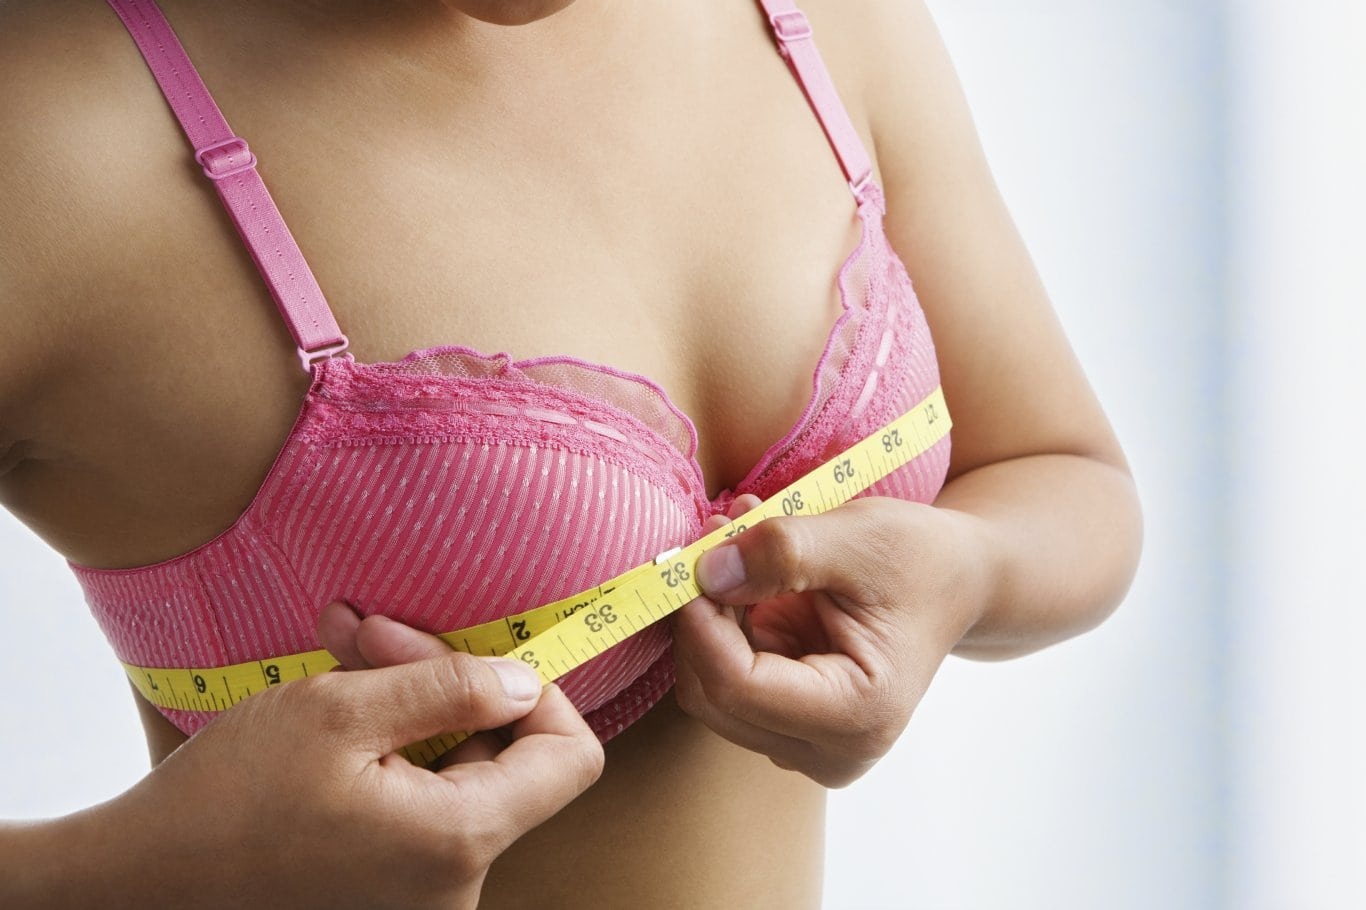 To learn about breast surgery combinations in Houston, call board-certified plastic surgeon Dr. Michael Eisemann at (713) 766-0071 today